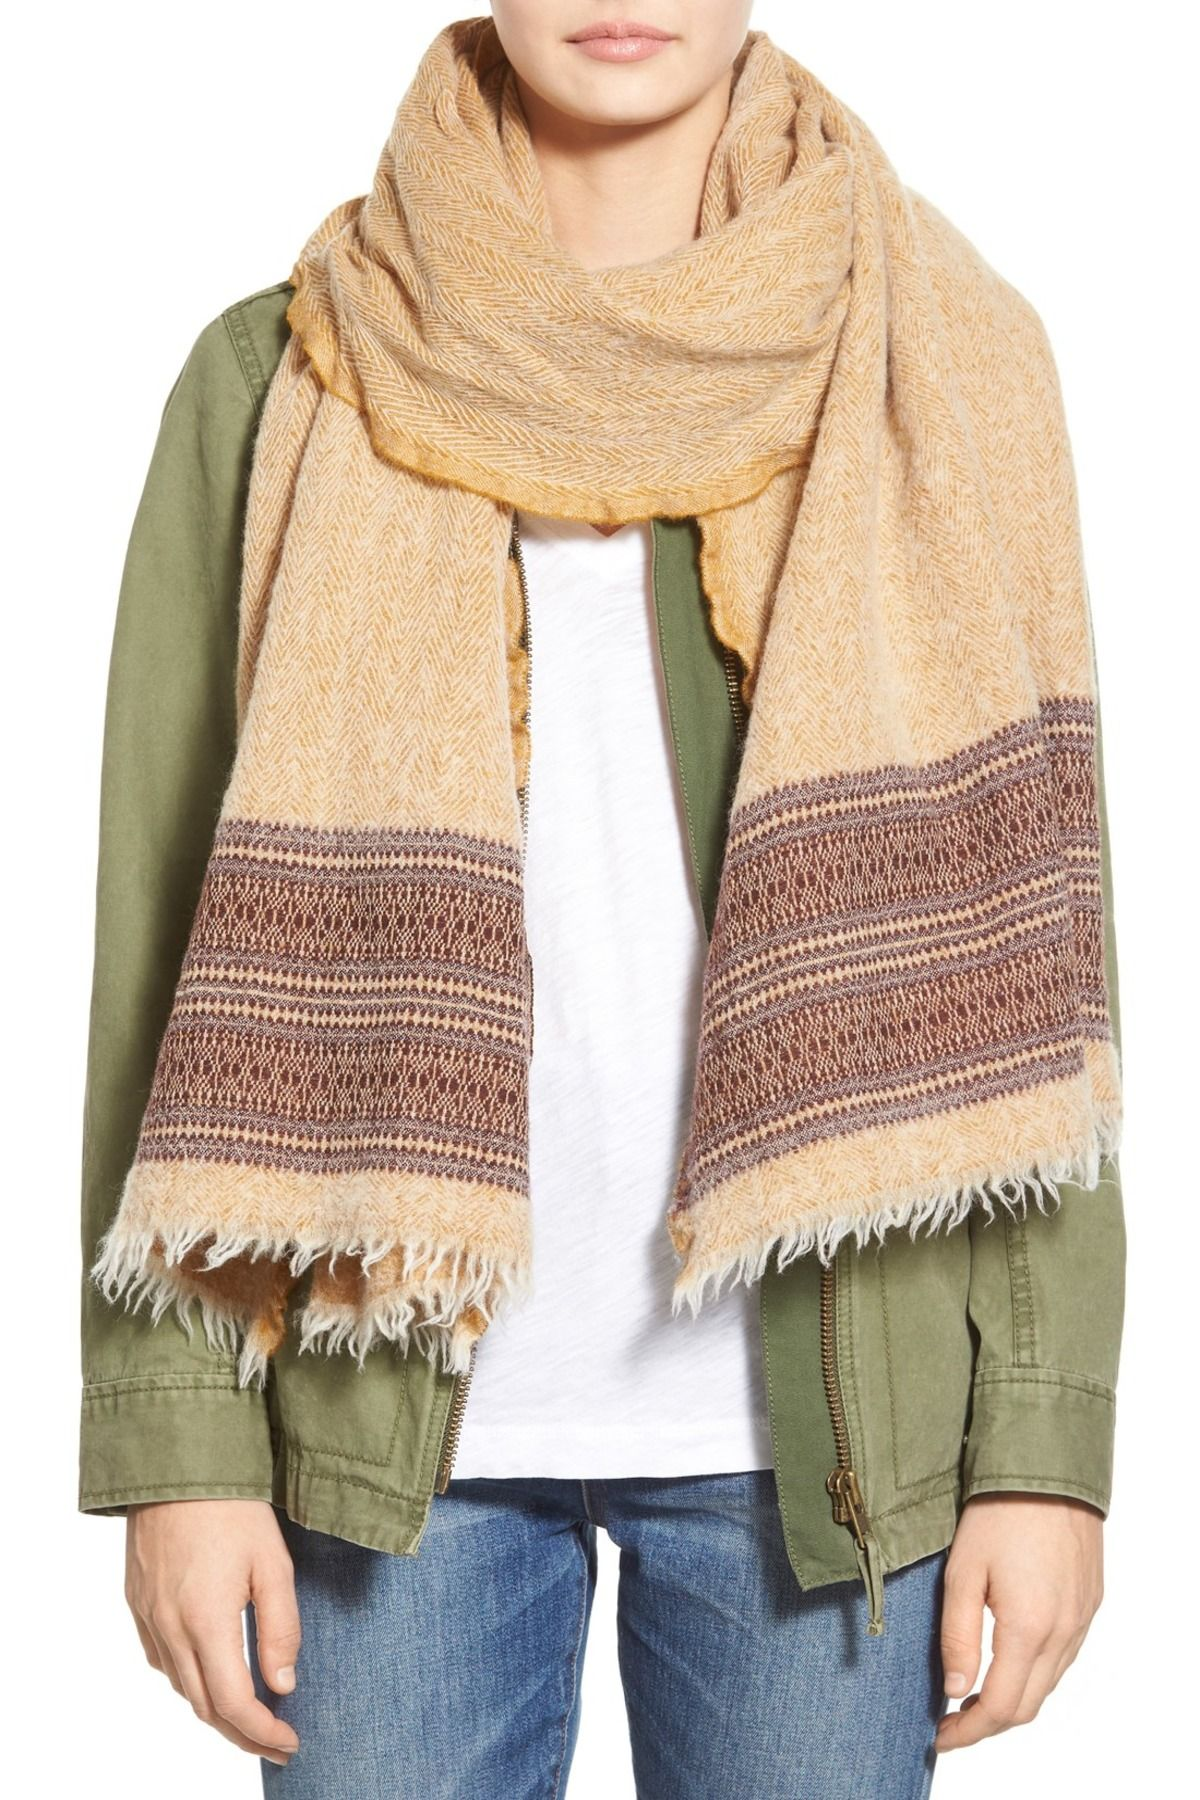 Madewell Boiled Wool Egyptian Gold Scarf